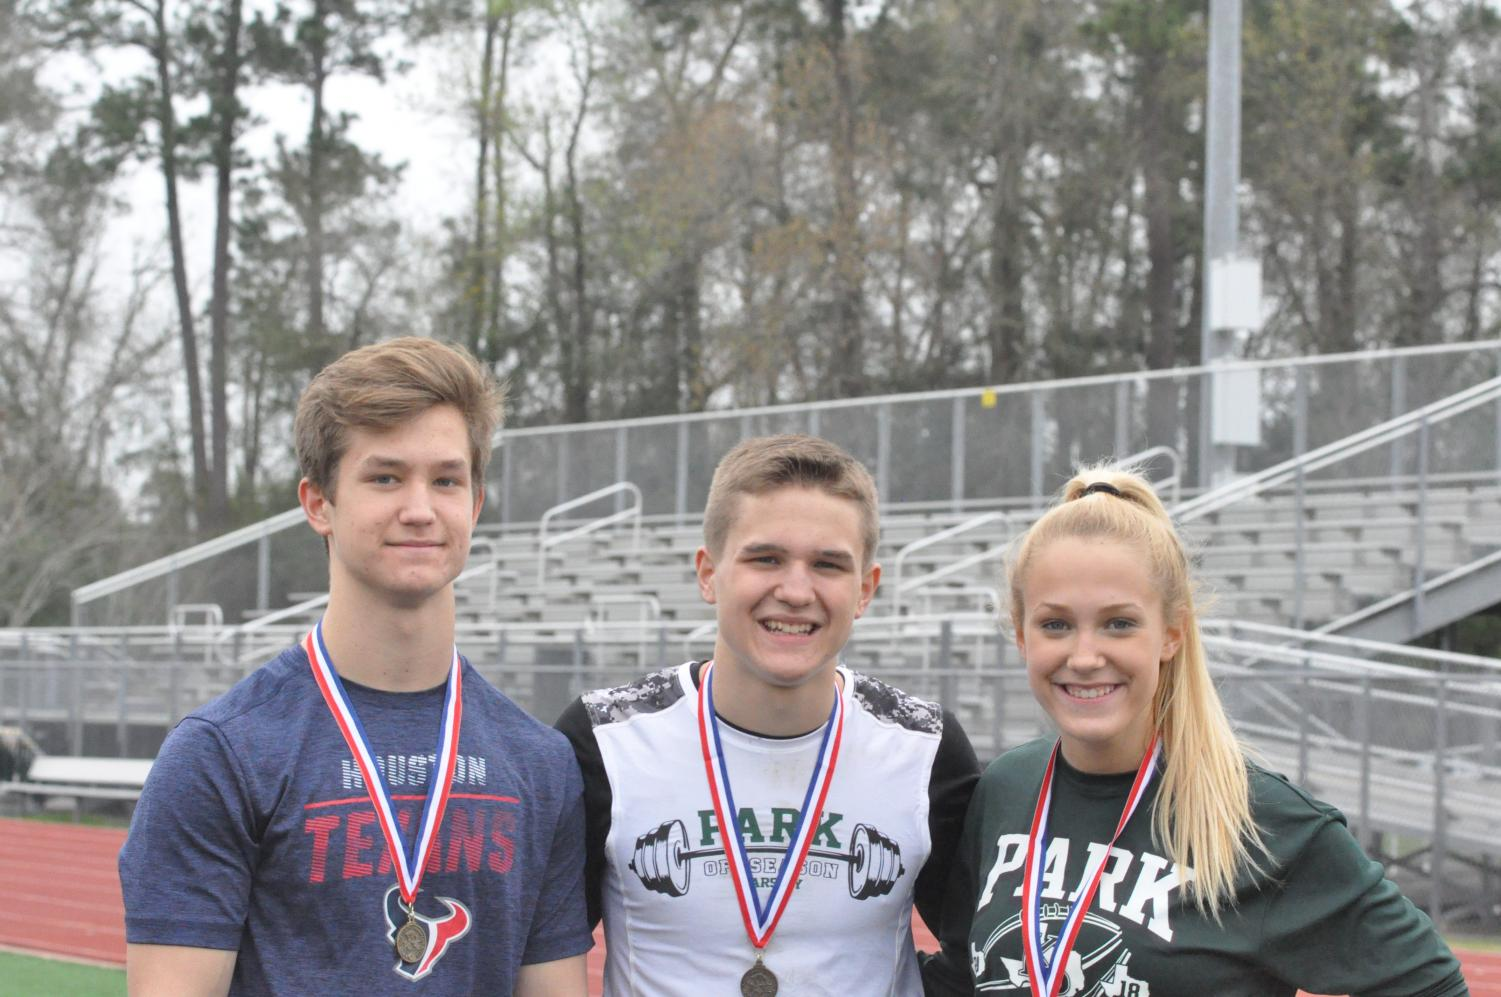 John, Grant and Victoria Golden compete in track and have already won a few medals. The three are extremely competitive in everything from sports to academics. They all have high hopes for track season.